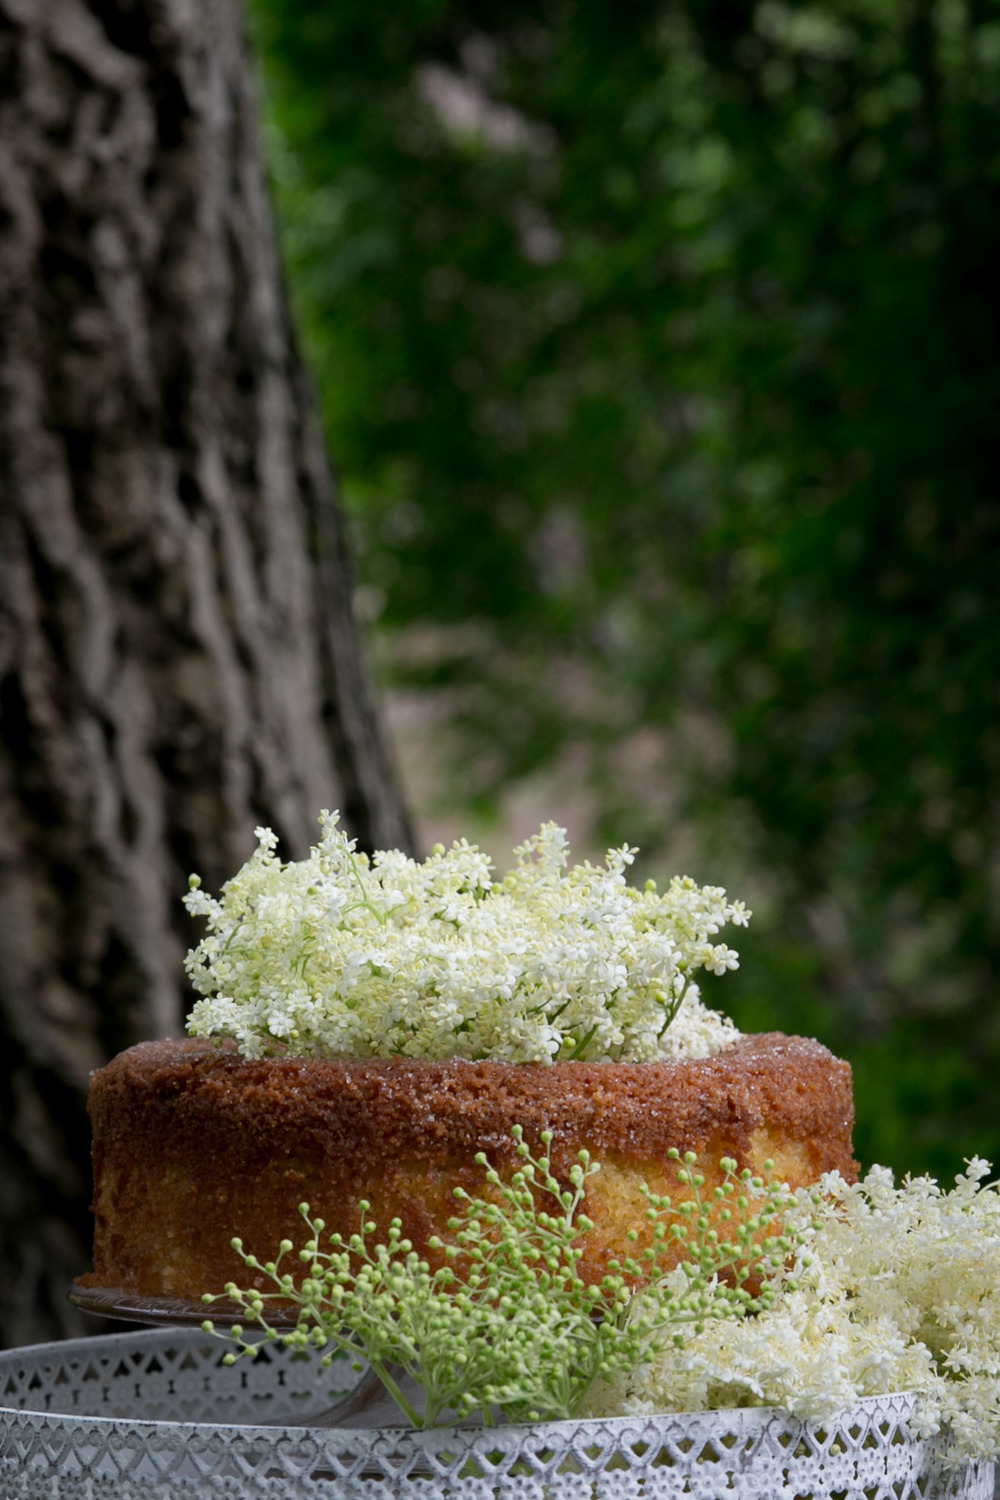 Cakes with elderflowers